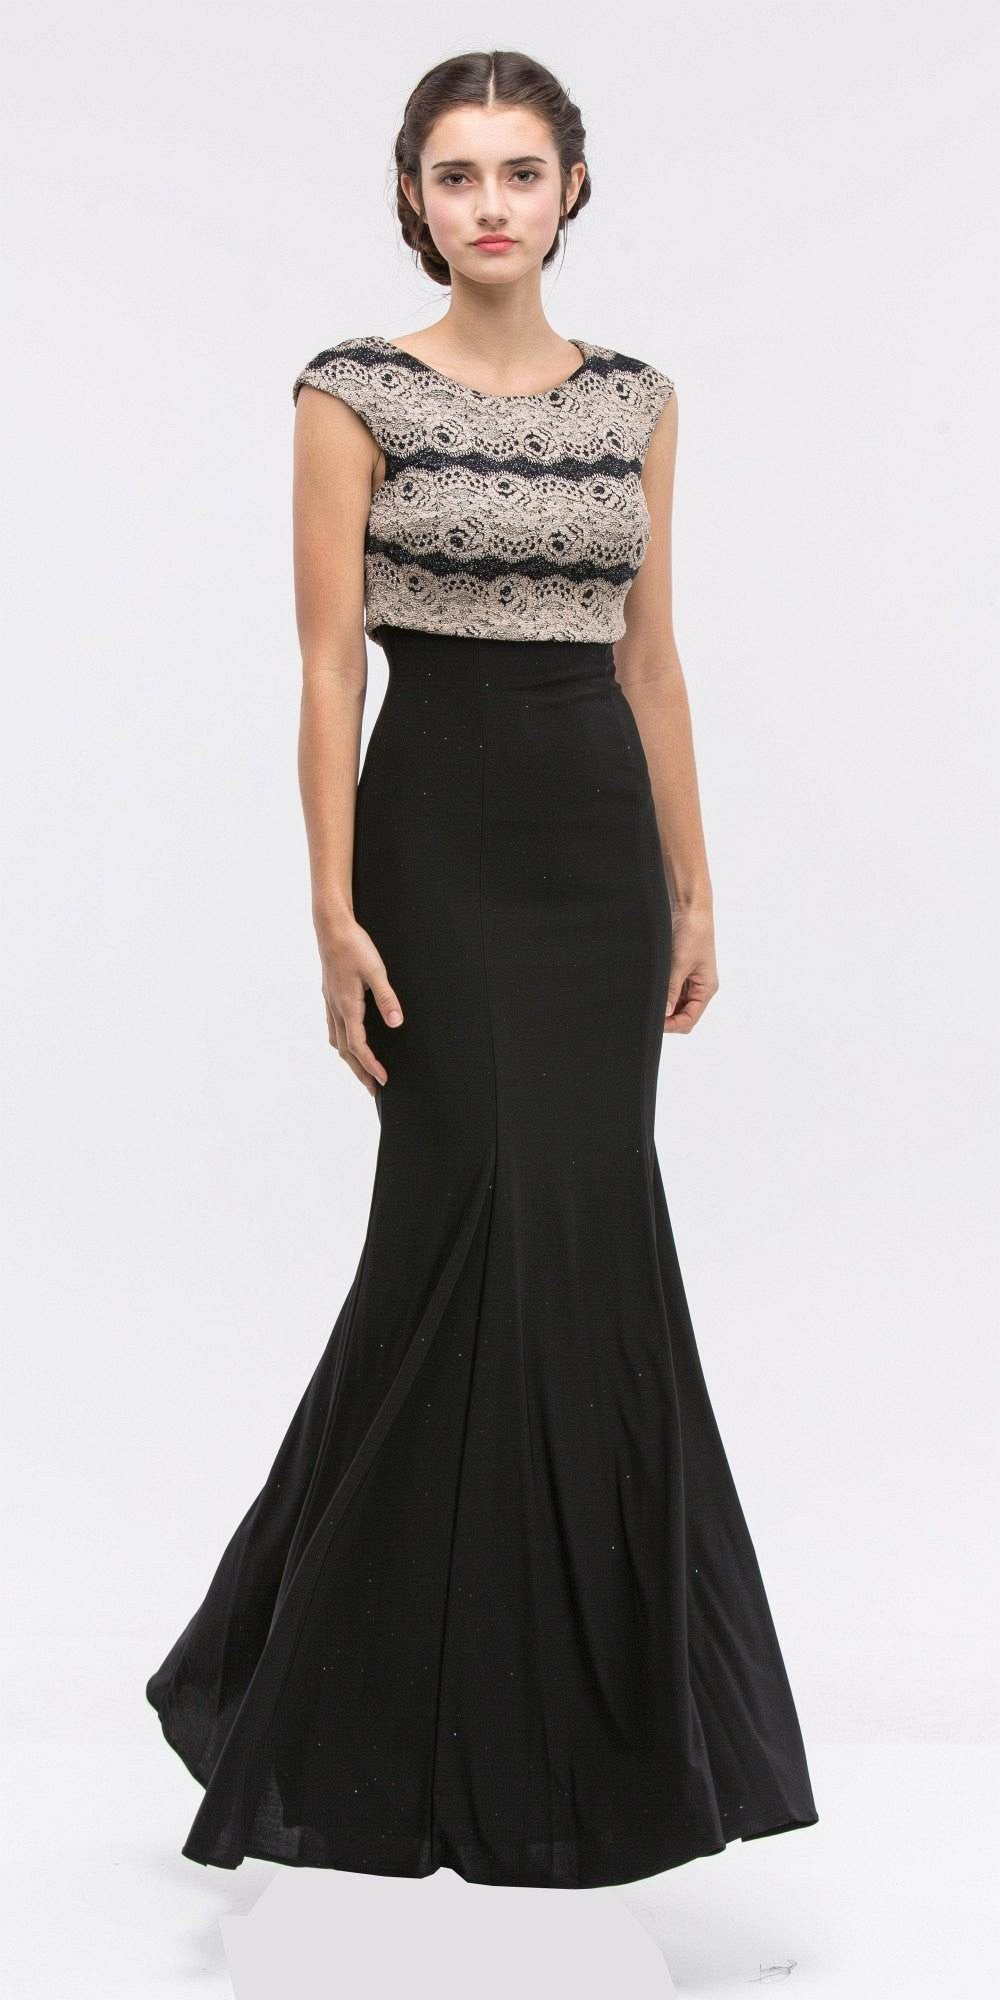 Sleeveless Black Jersey Fitted Prom Gown with Gold Lace Bodice